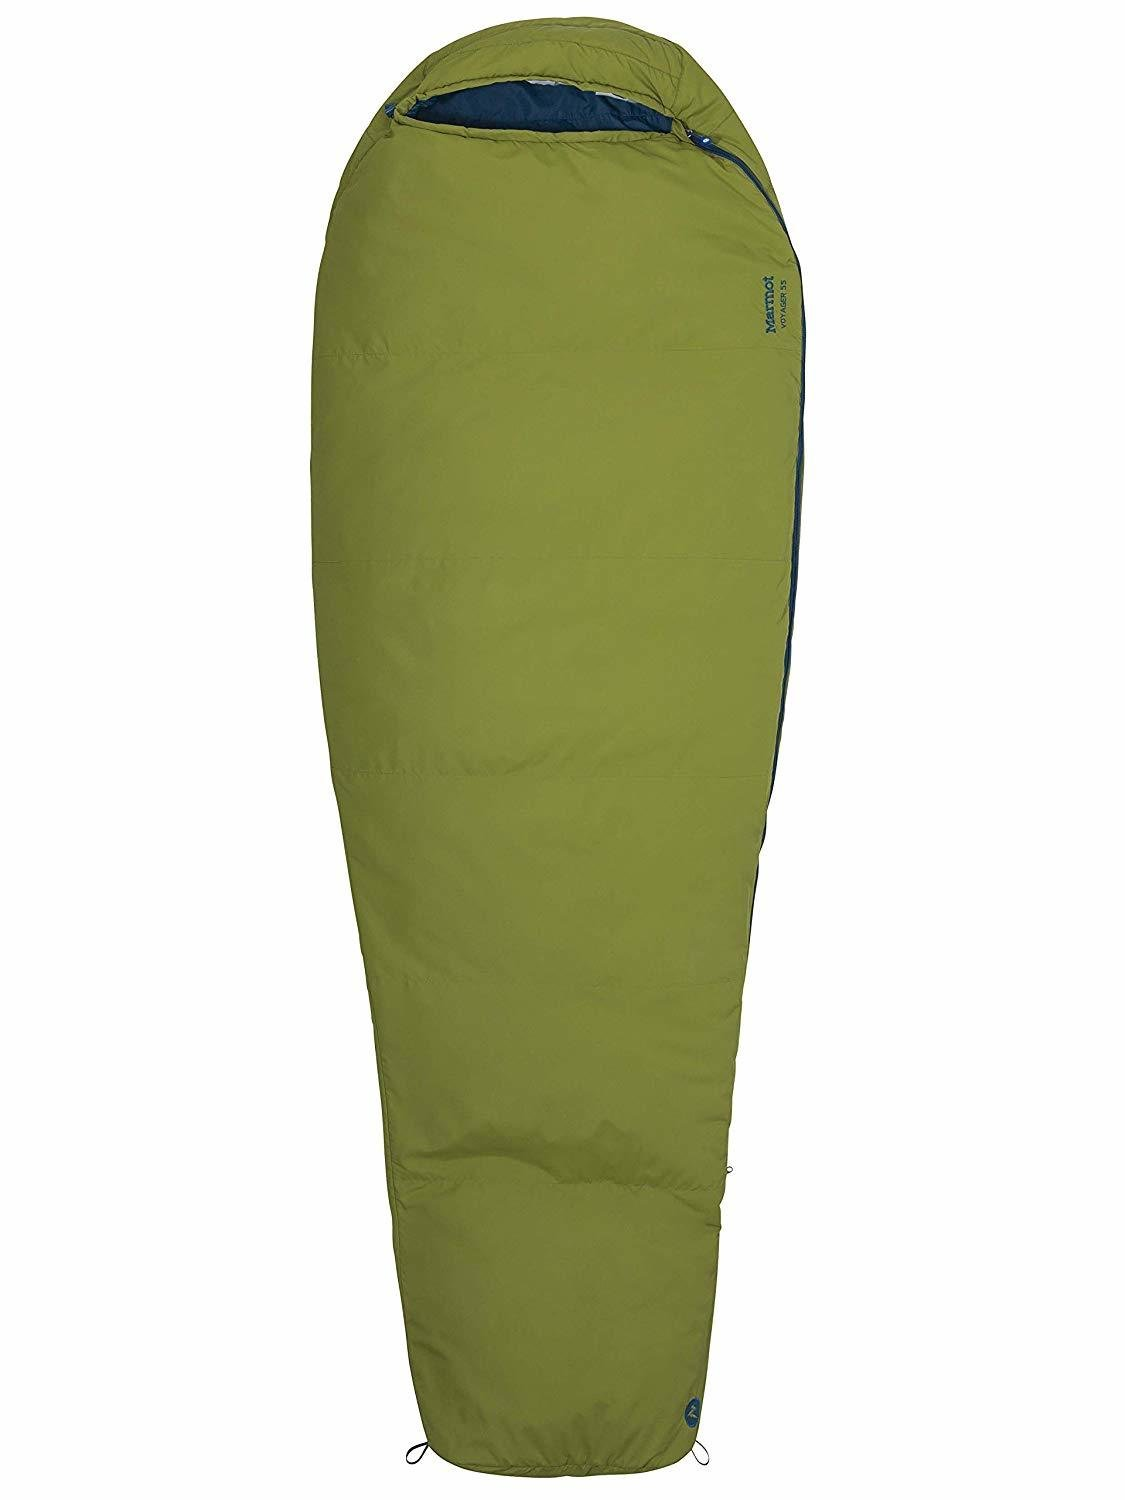 Marmot Voyager 55F (17C) Mummy Sleeping Bag, Sleeping Bag Liner - fits up to 6 ft 6""